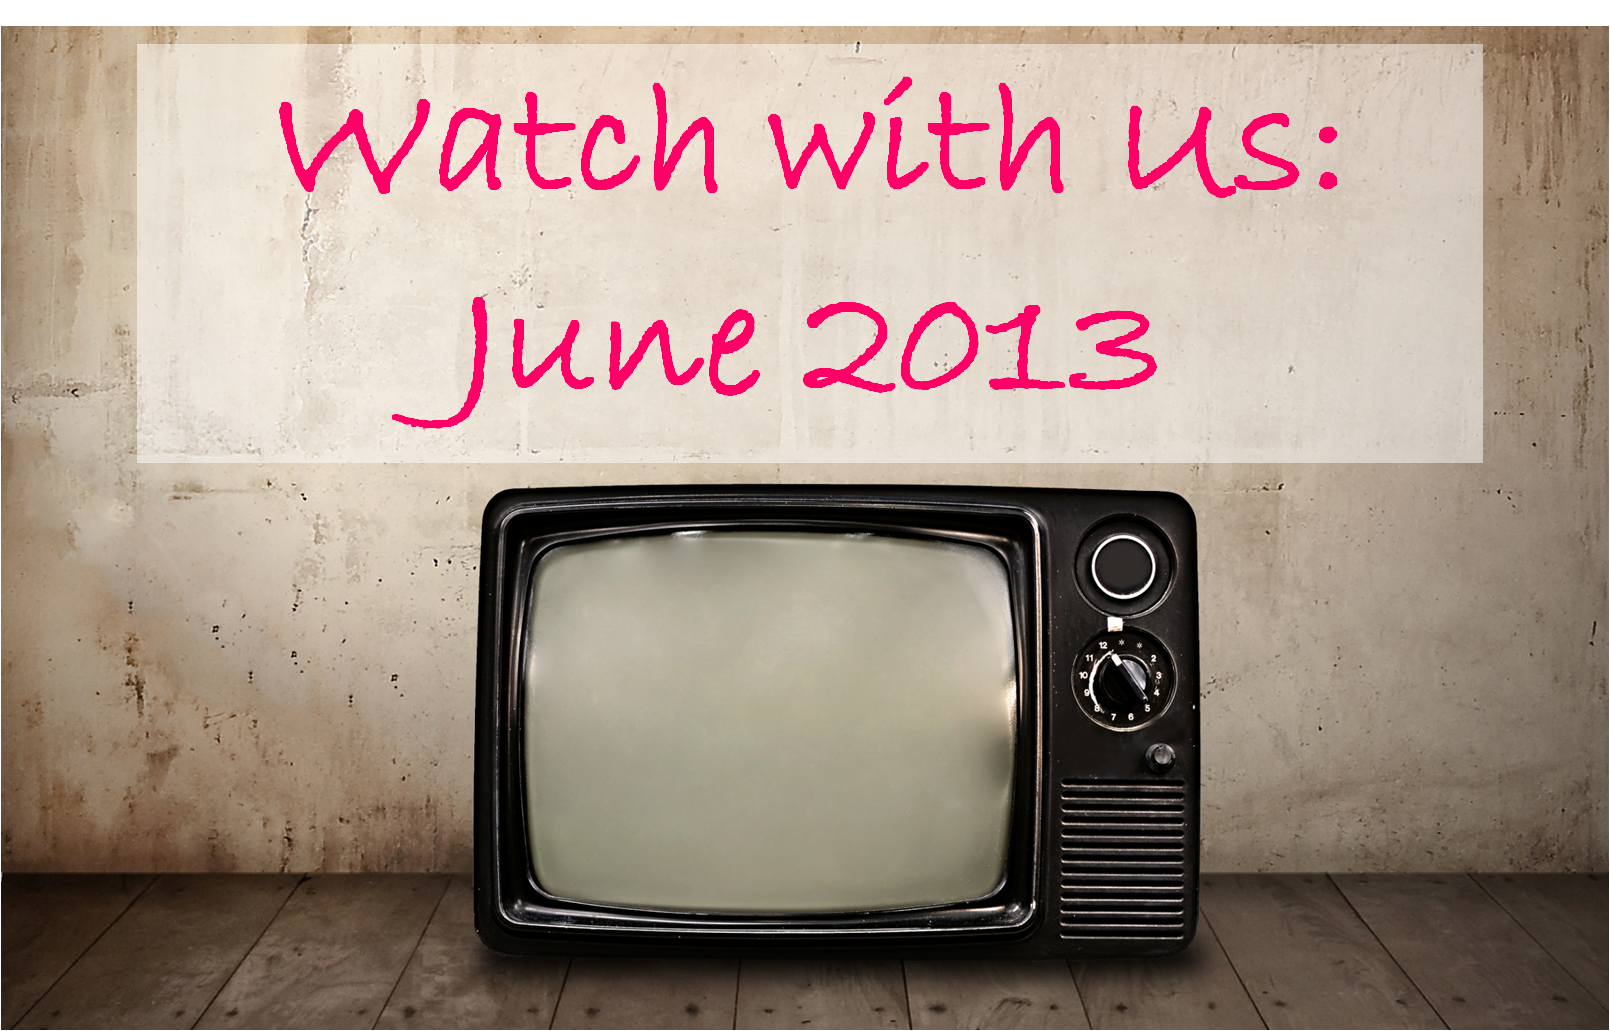 Watch with us June